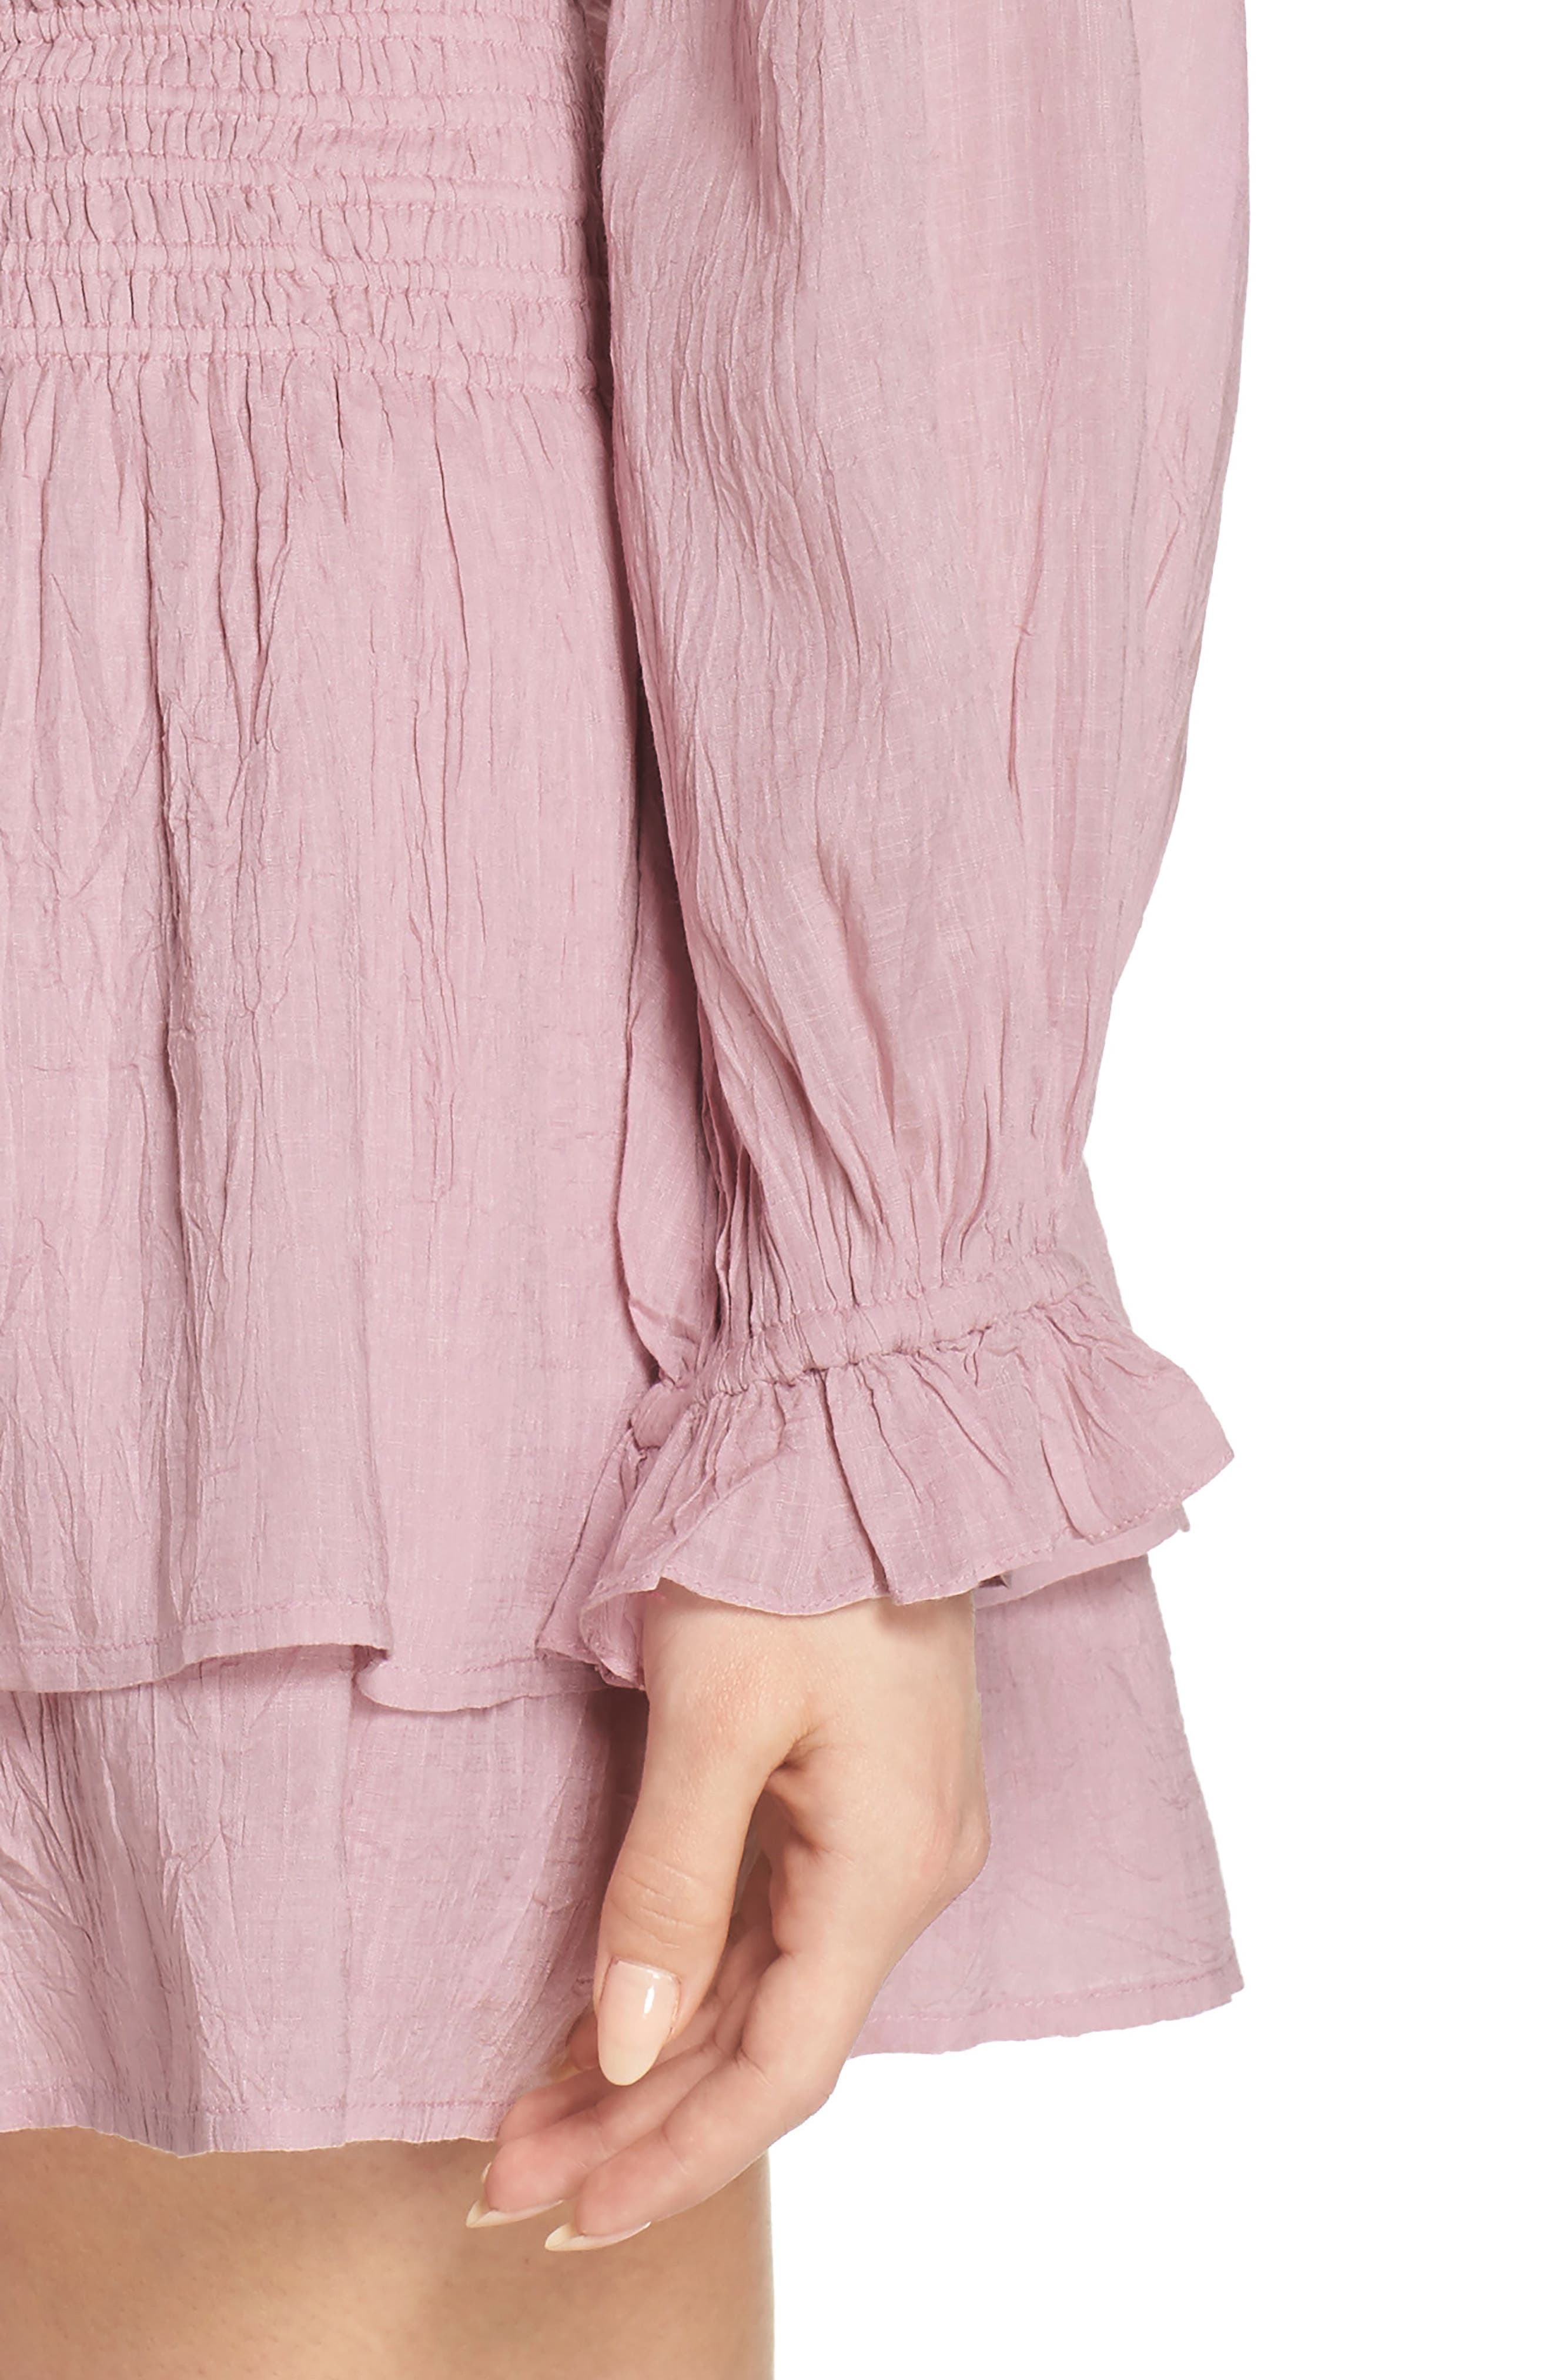 Lemay Peasant Dress,                             Alternate thumbnail 4, color,                             Pale Mauve